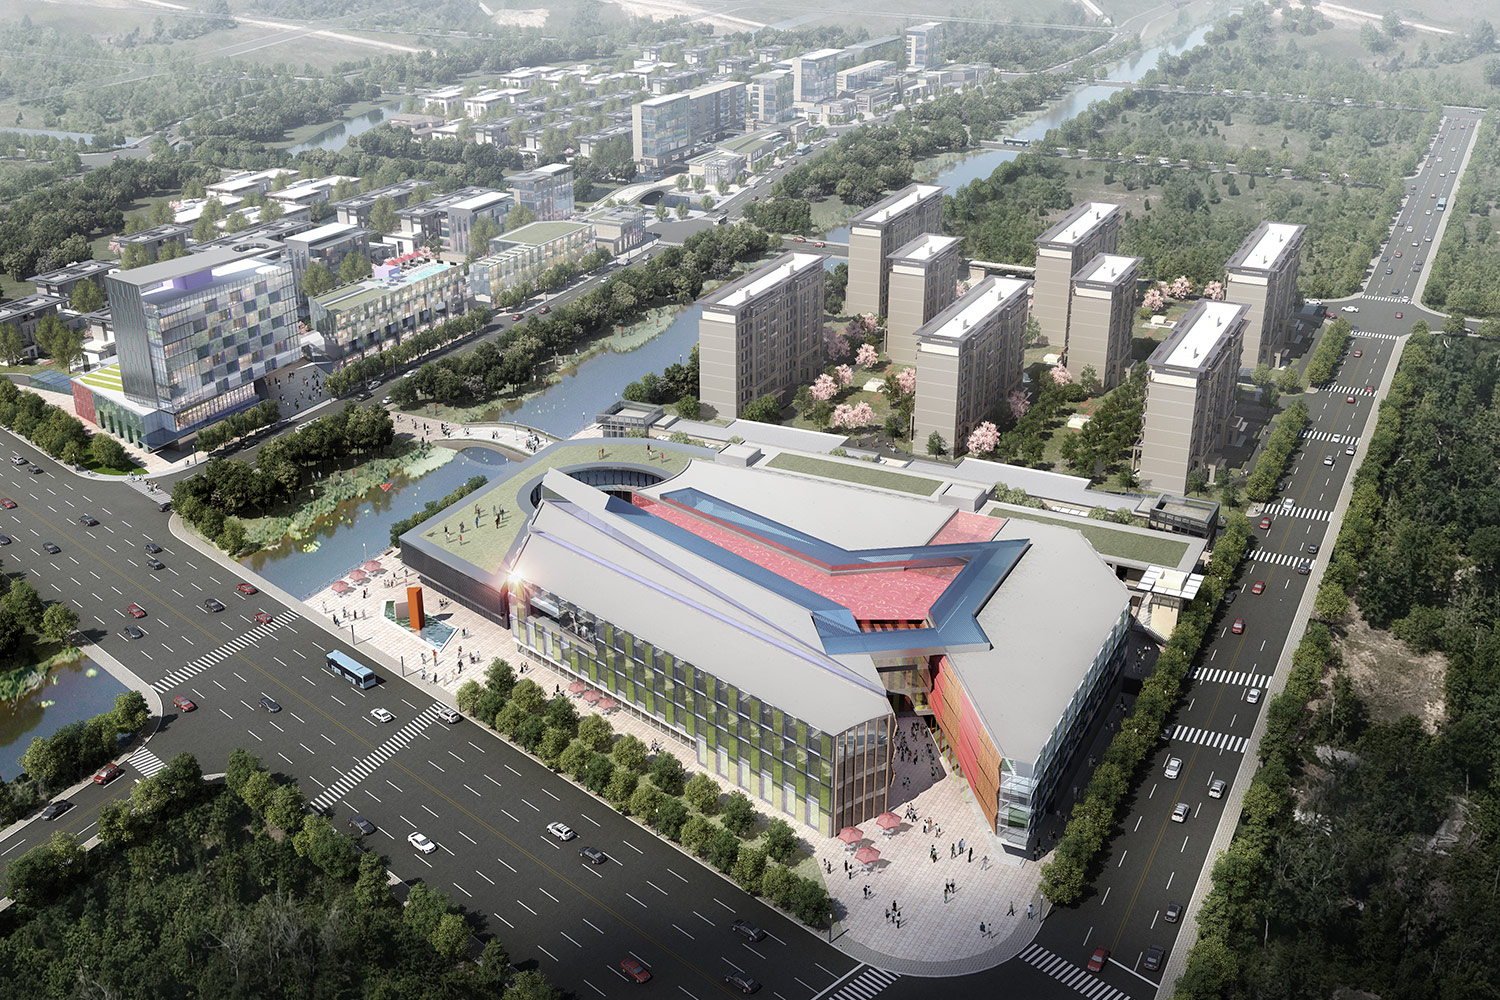 Projects_1500_Maqiao10.jpg